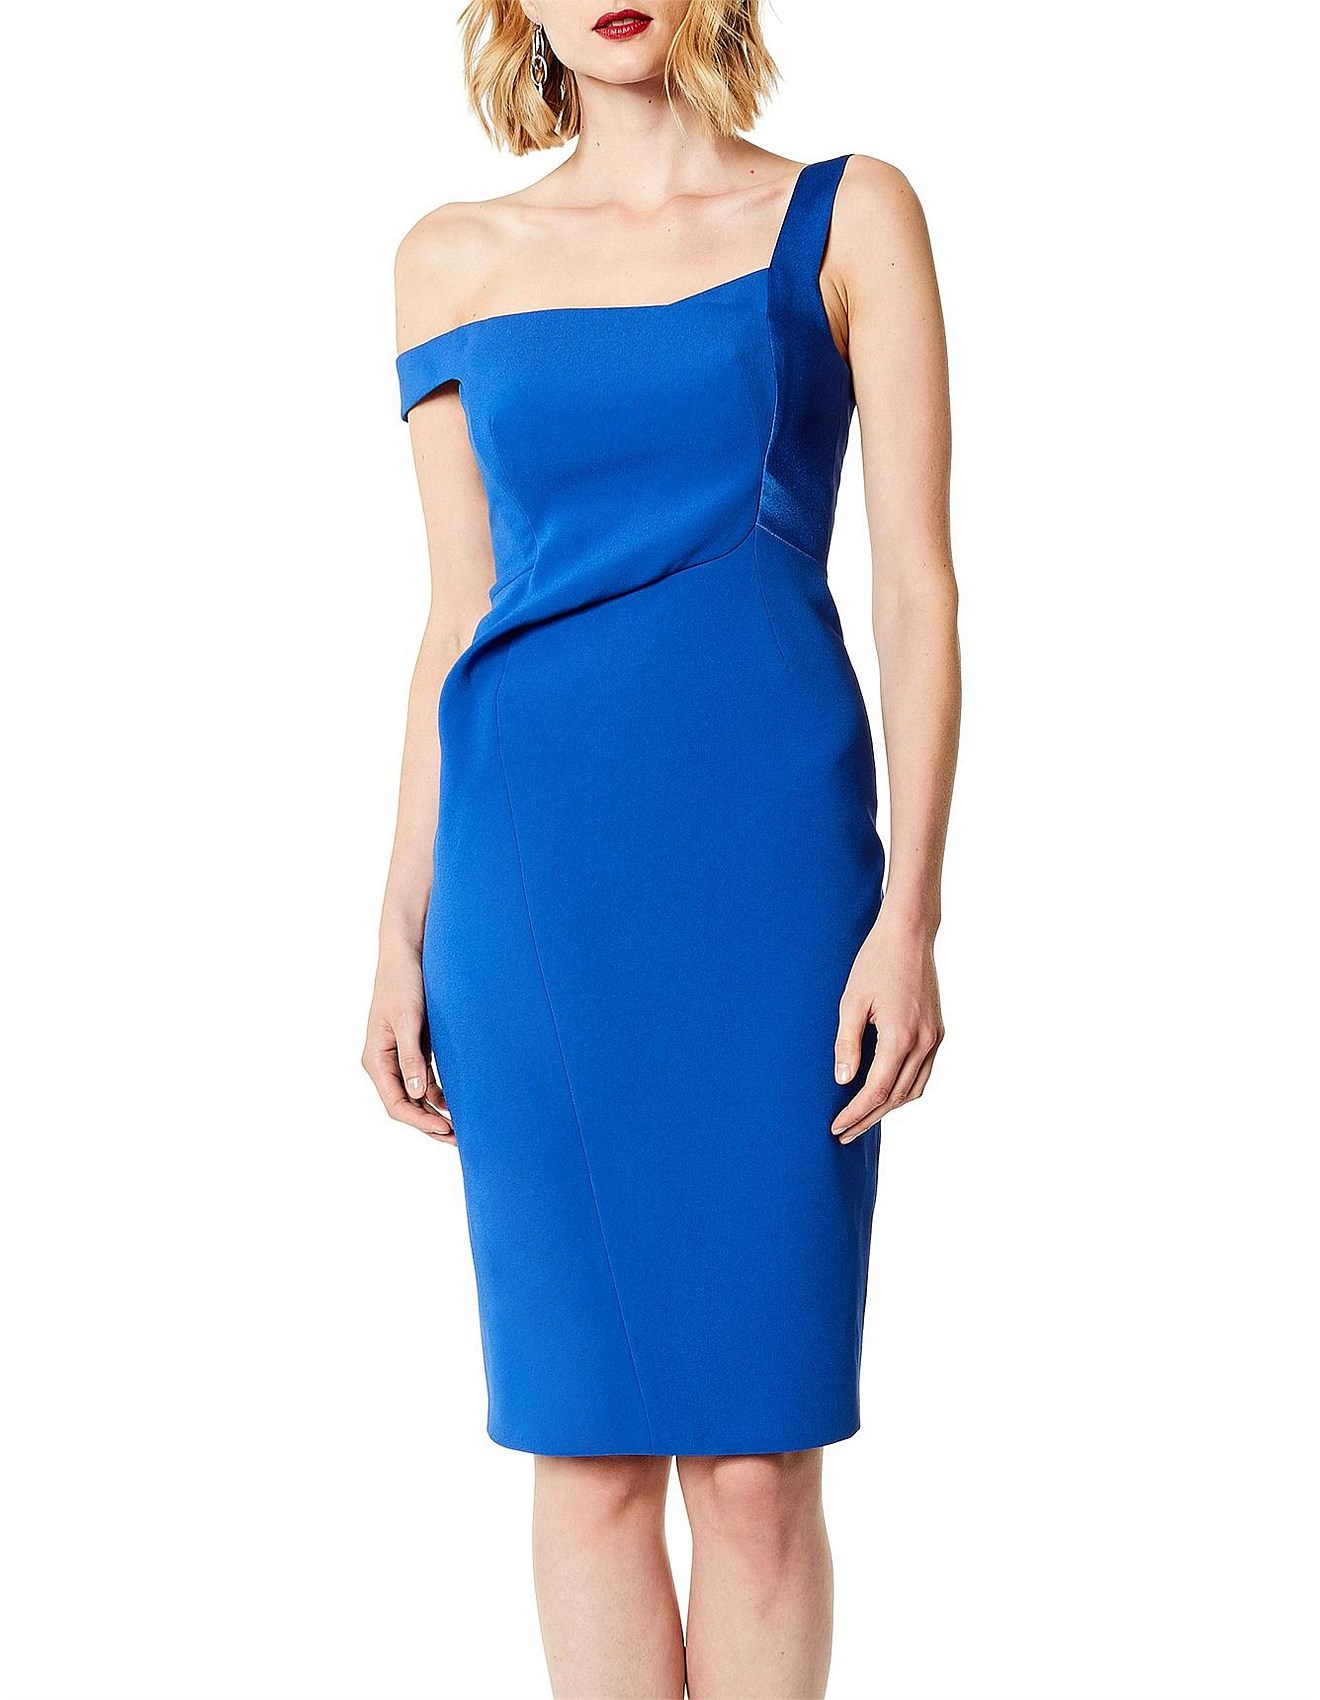 bd2adc267f64 Karen Millen | Buy Karen Millen Clothing Online | David Jones - ASYMMETRIC  STRAP BODYCON DRESS